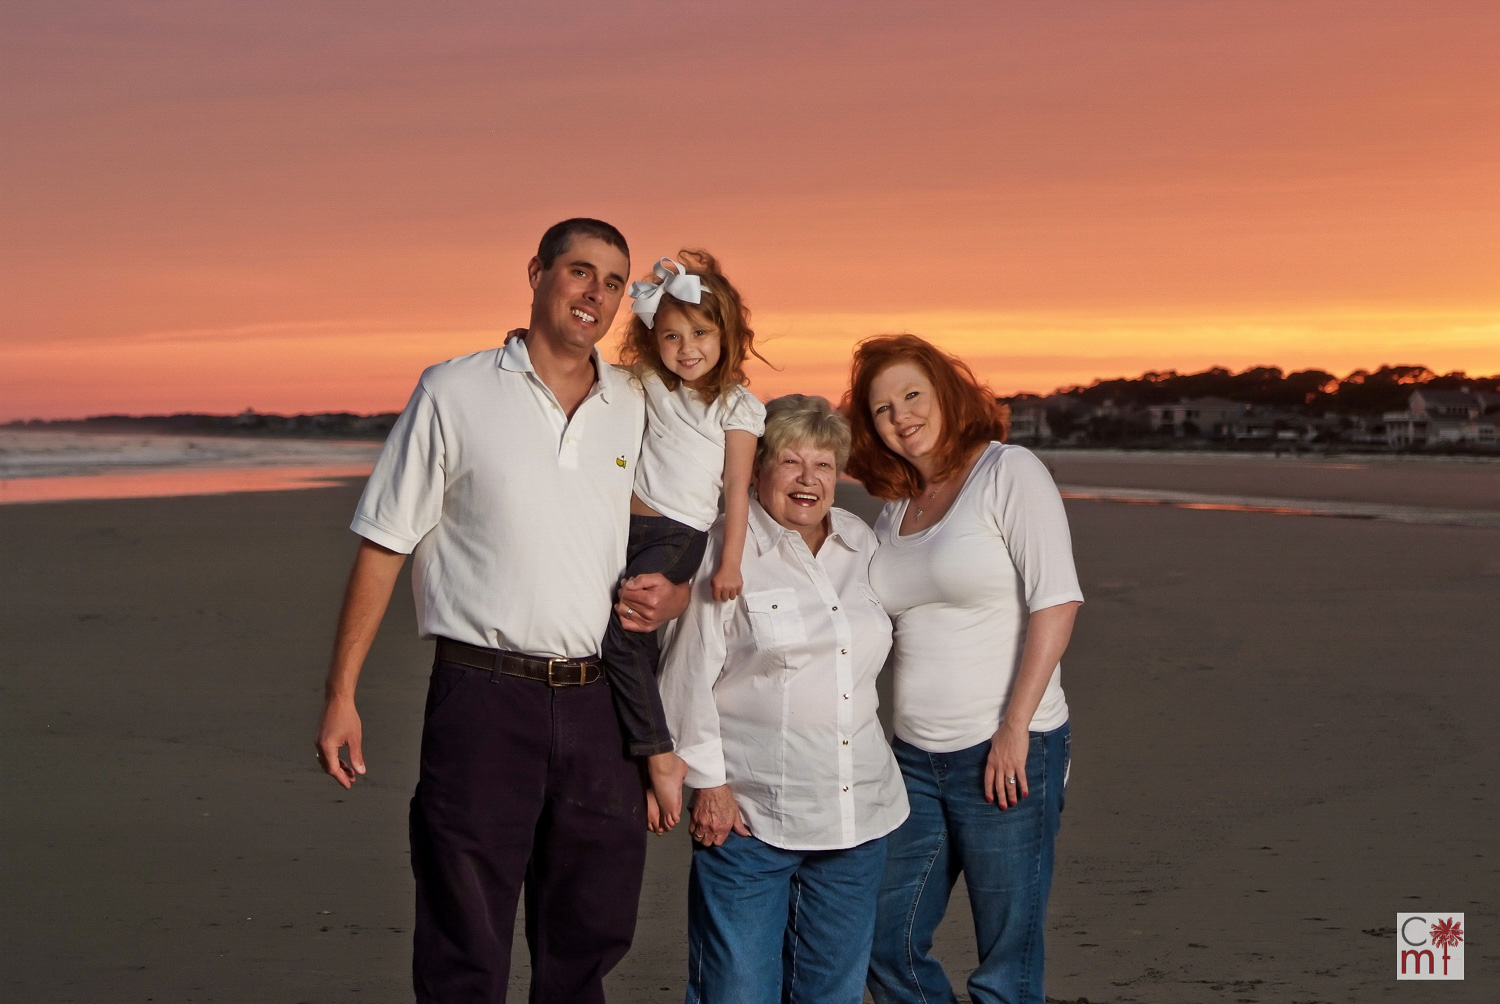 beach_portraits_beaufort-130.jpg